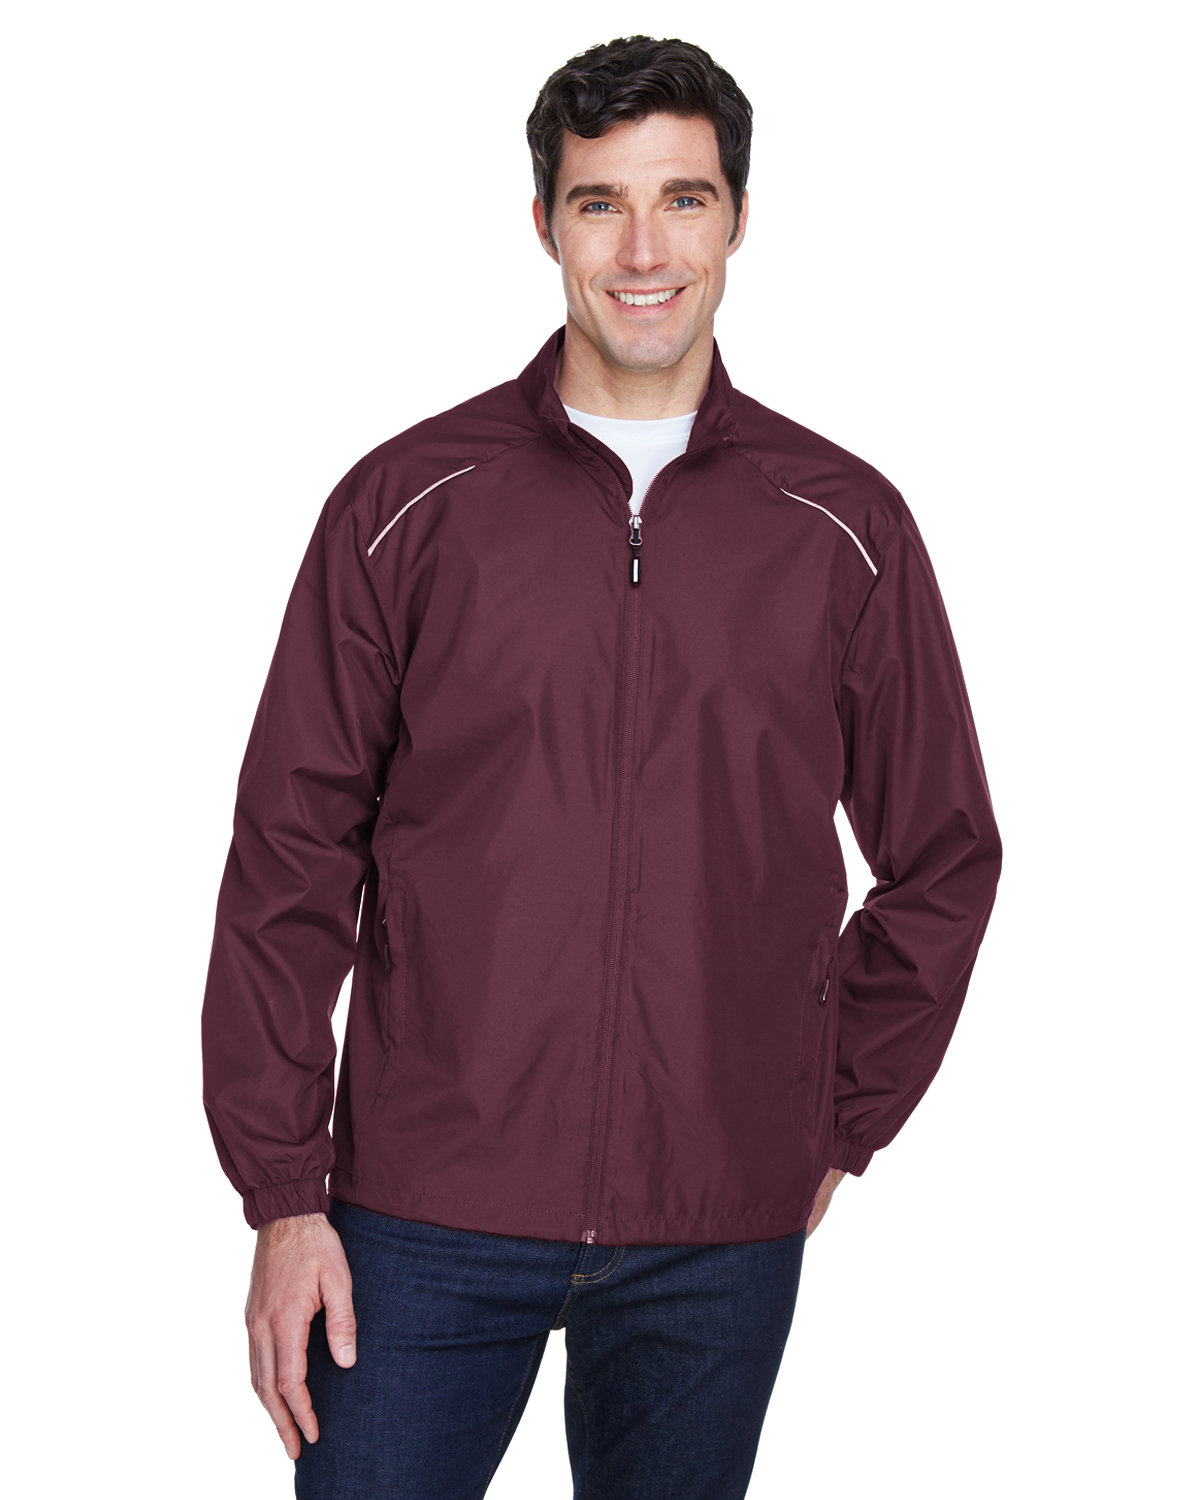 Core 365 Men's Motivate Unlined Lightweight Jacket BURGUNDY